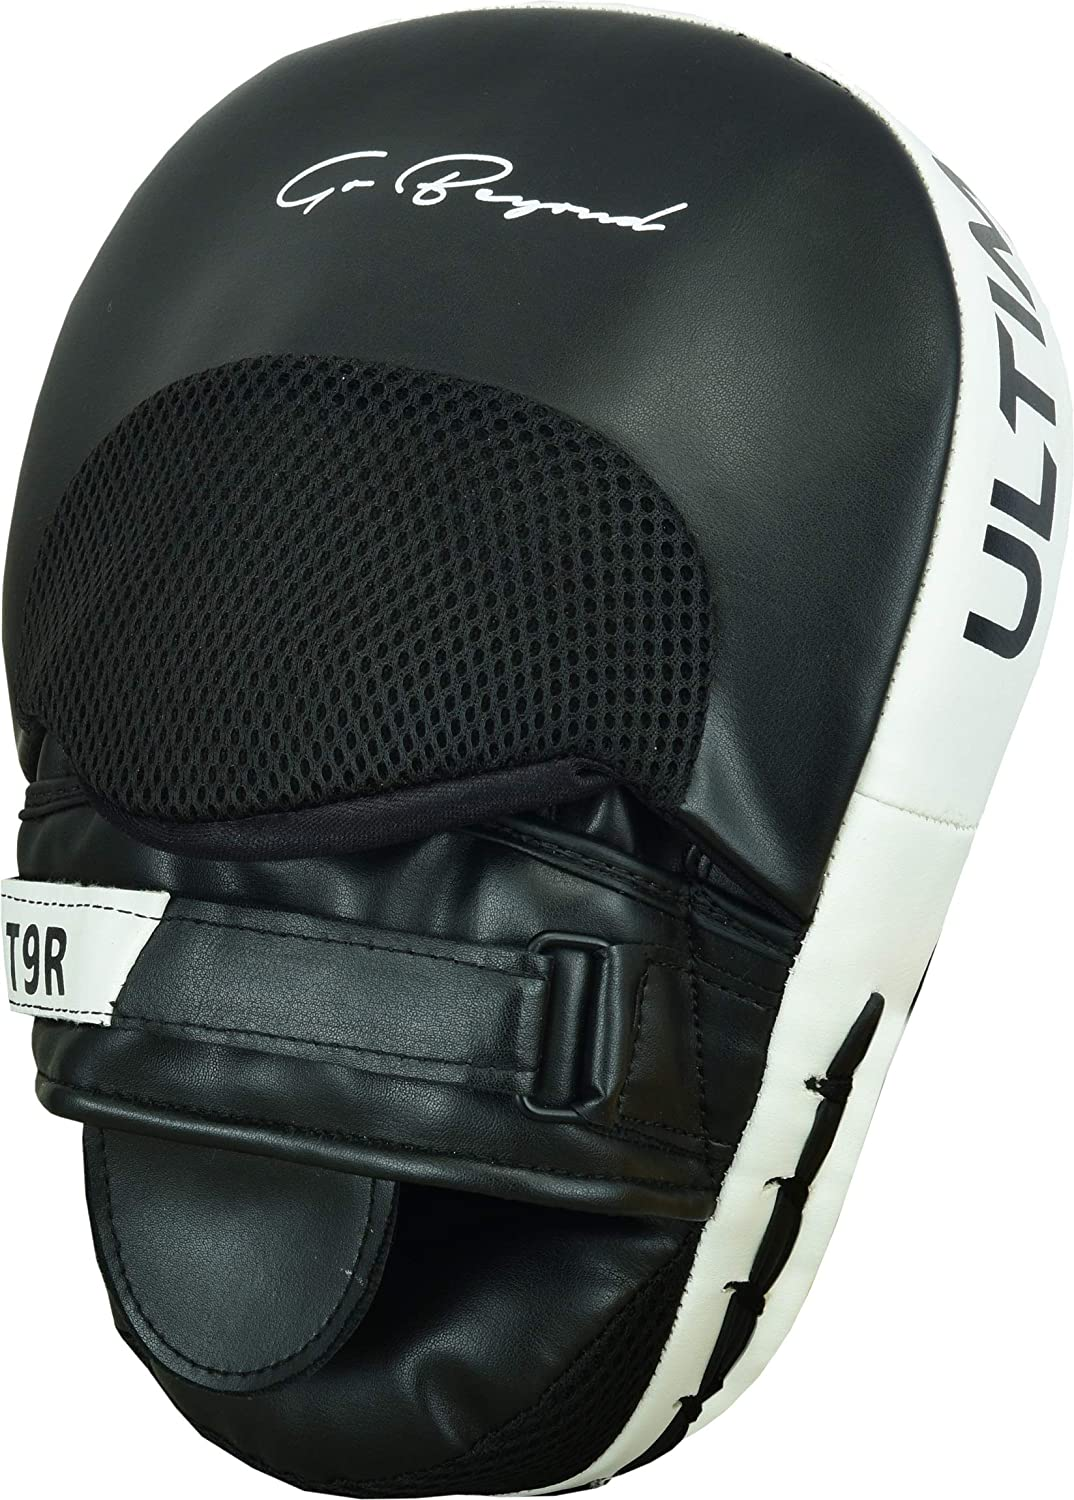 EMRAH Boxing Pads V 2.0 Focus Mitts MMA Muay Thai Hook and Jab Curved Kickboxing Training Strike Target Hand Pads Martial Arts Punching Shield